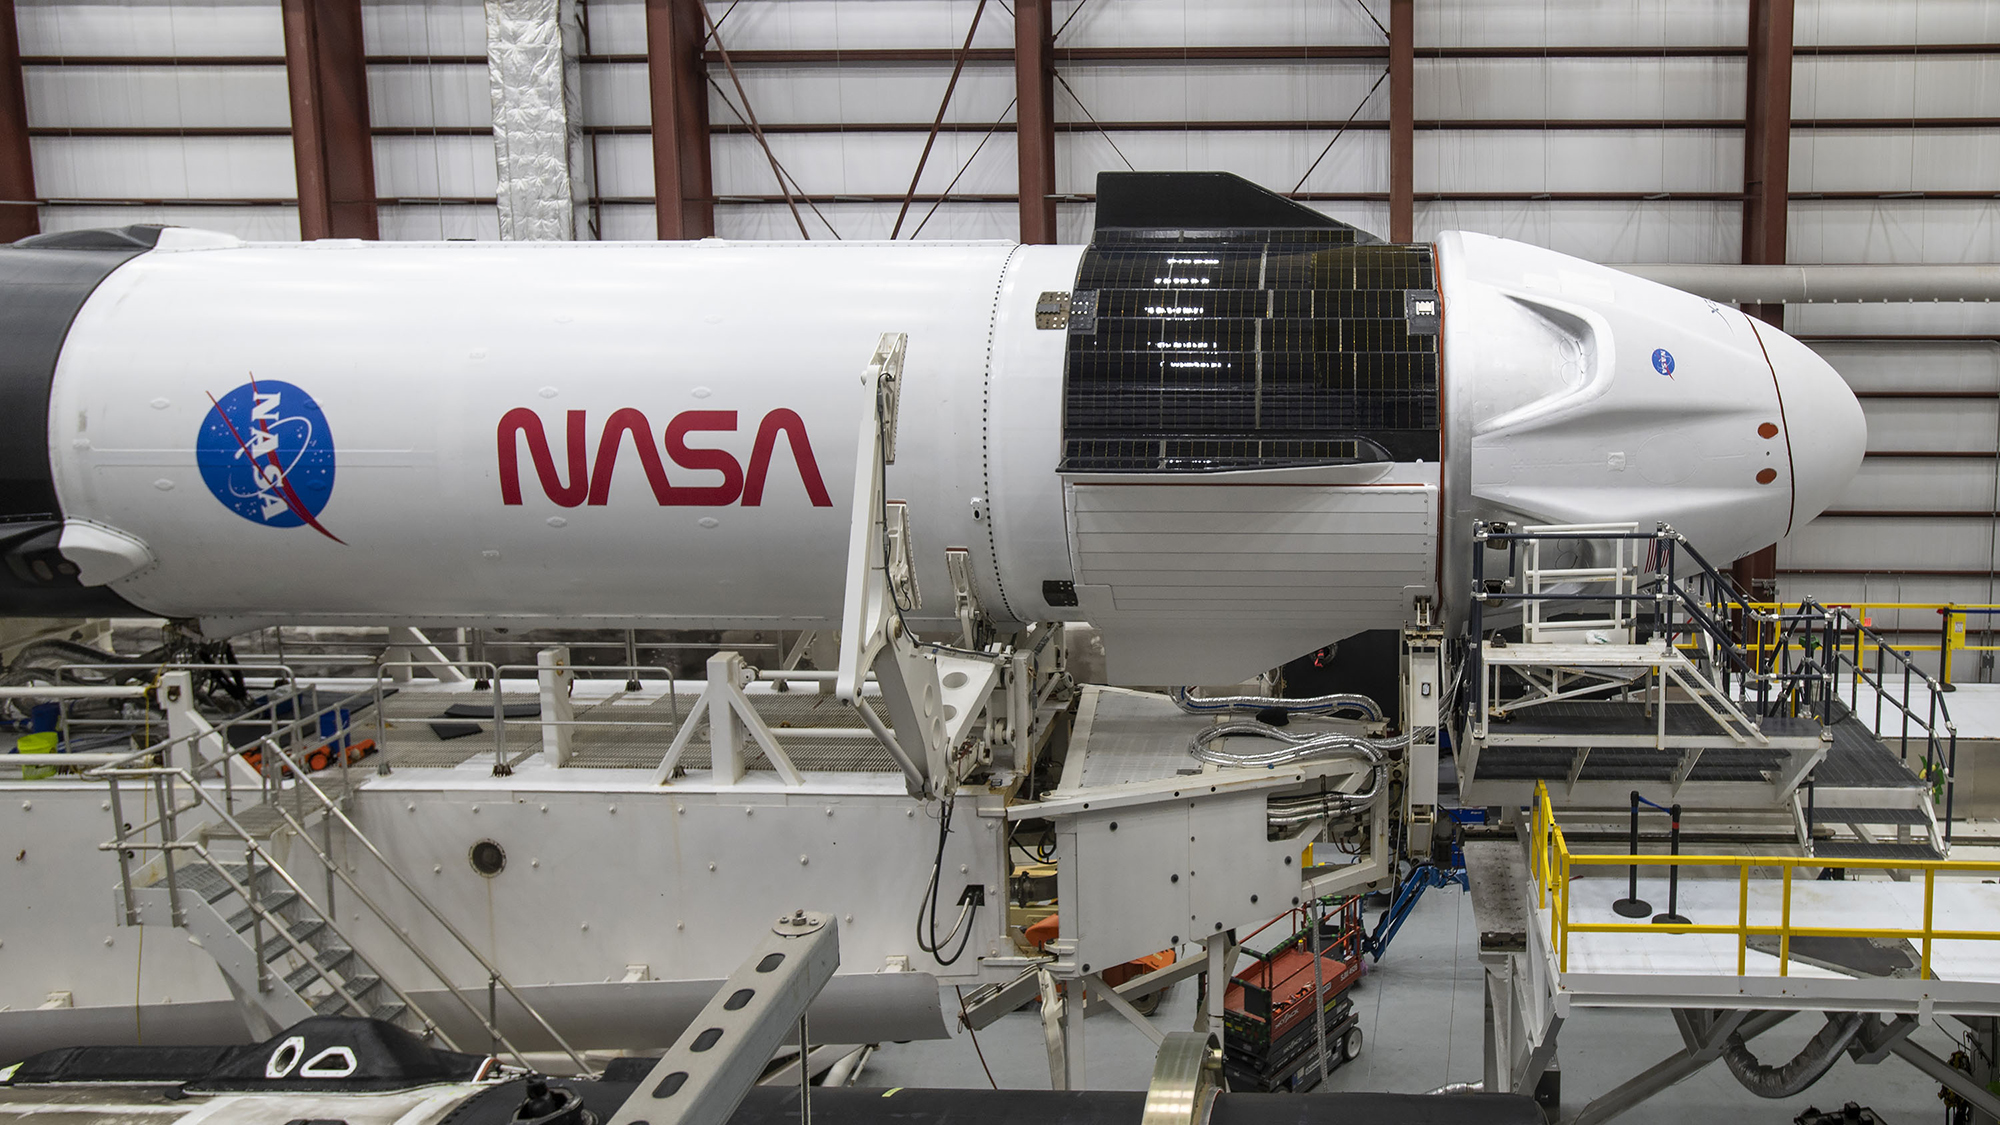 SpaceX, NASA delay Crew-1 astronaut launch to Sunday